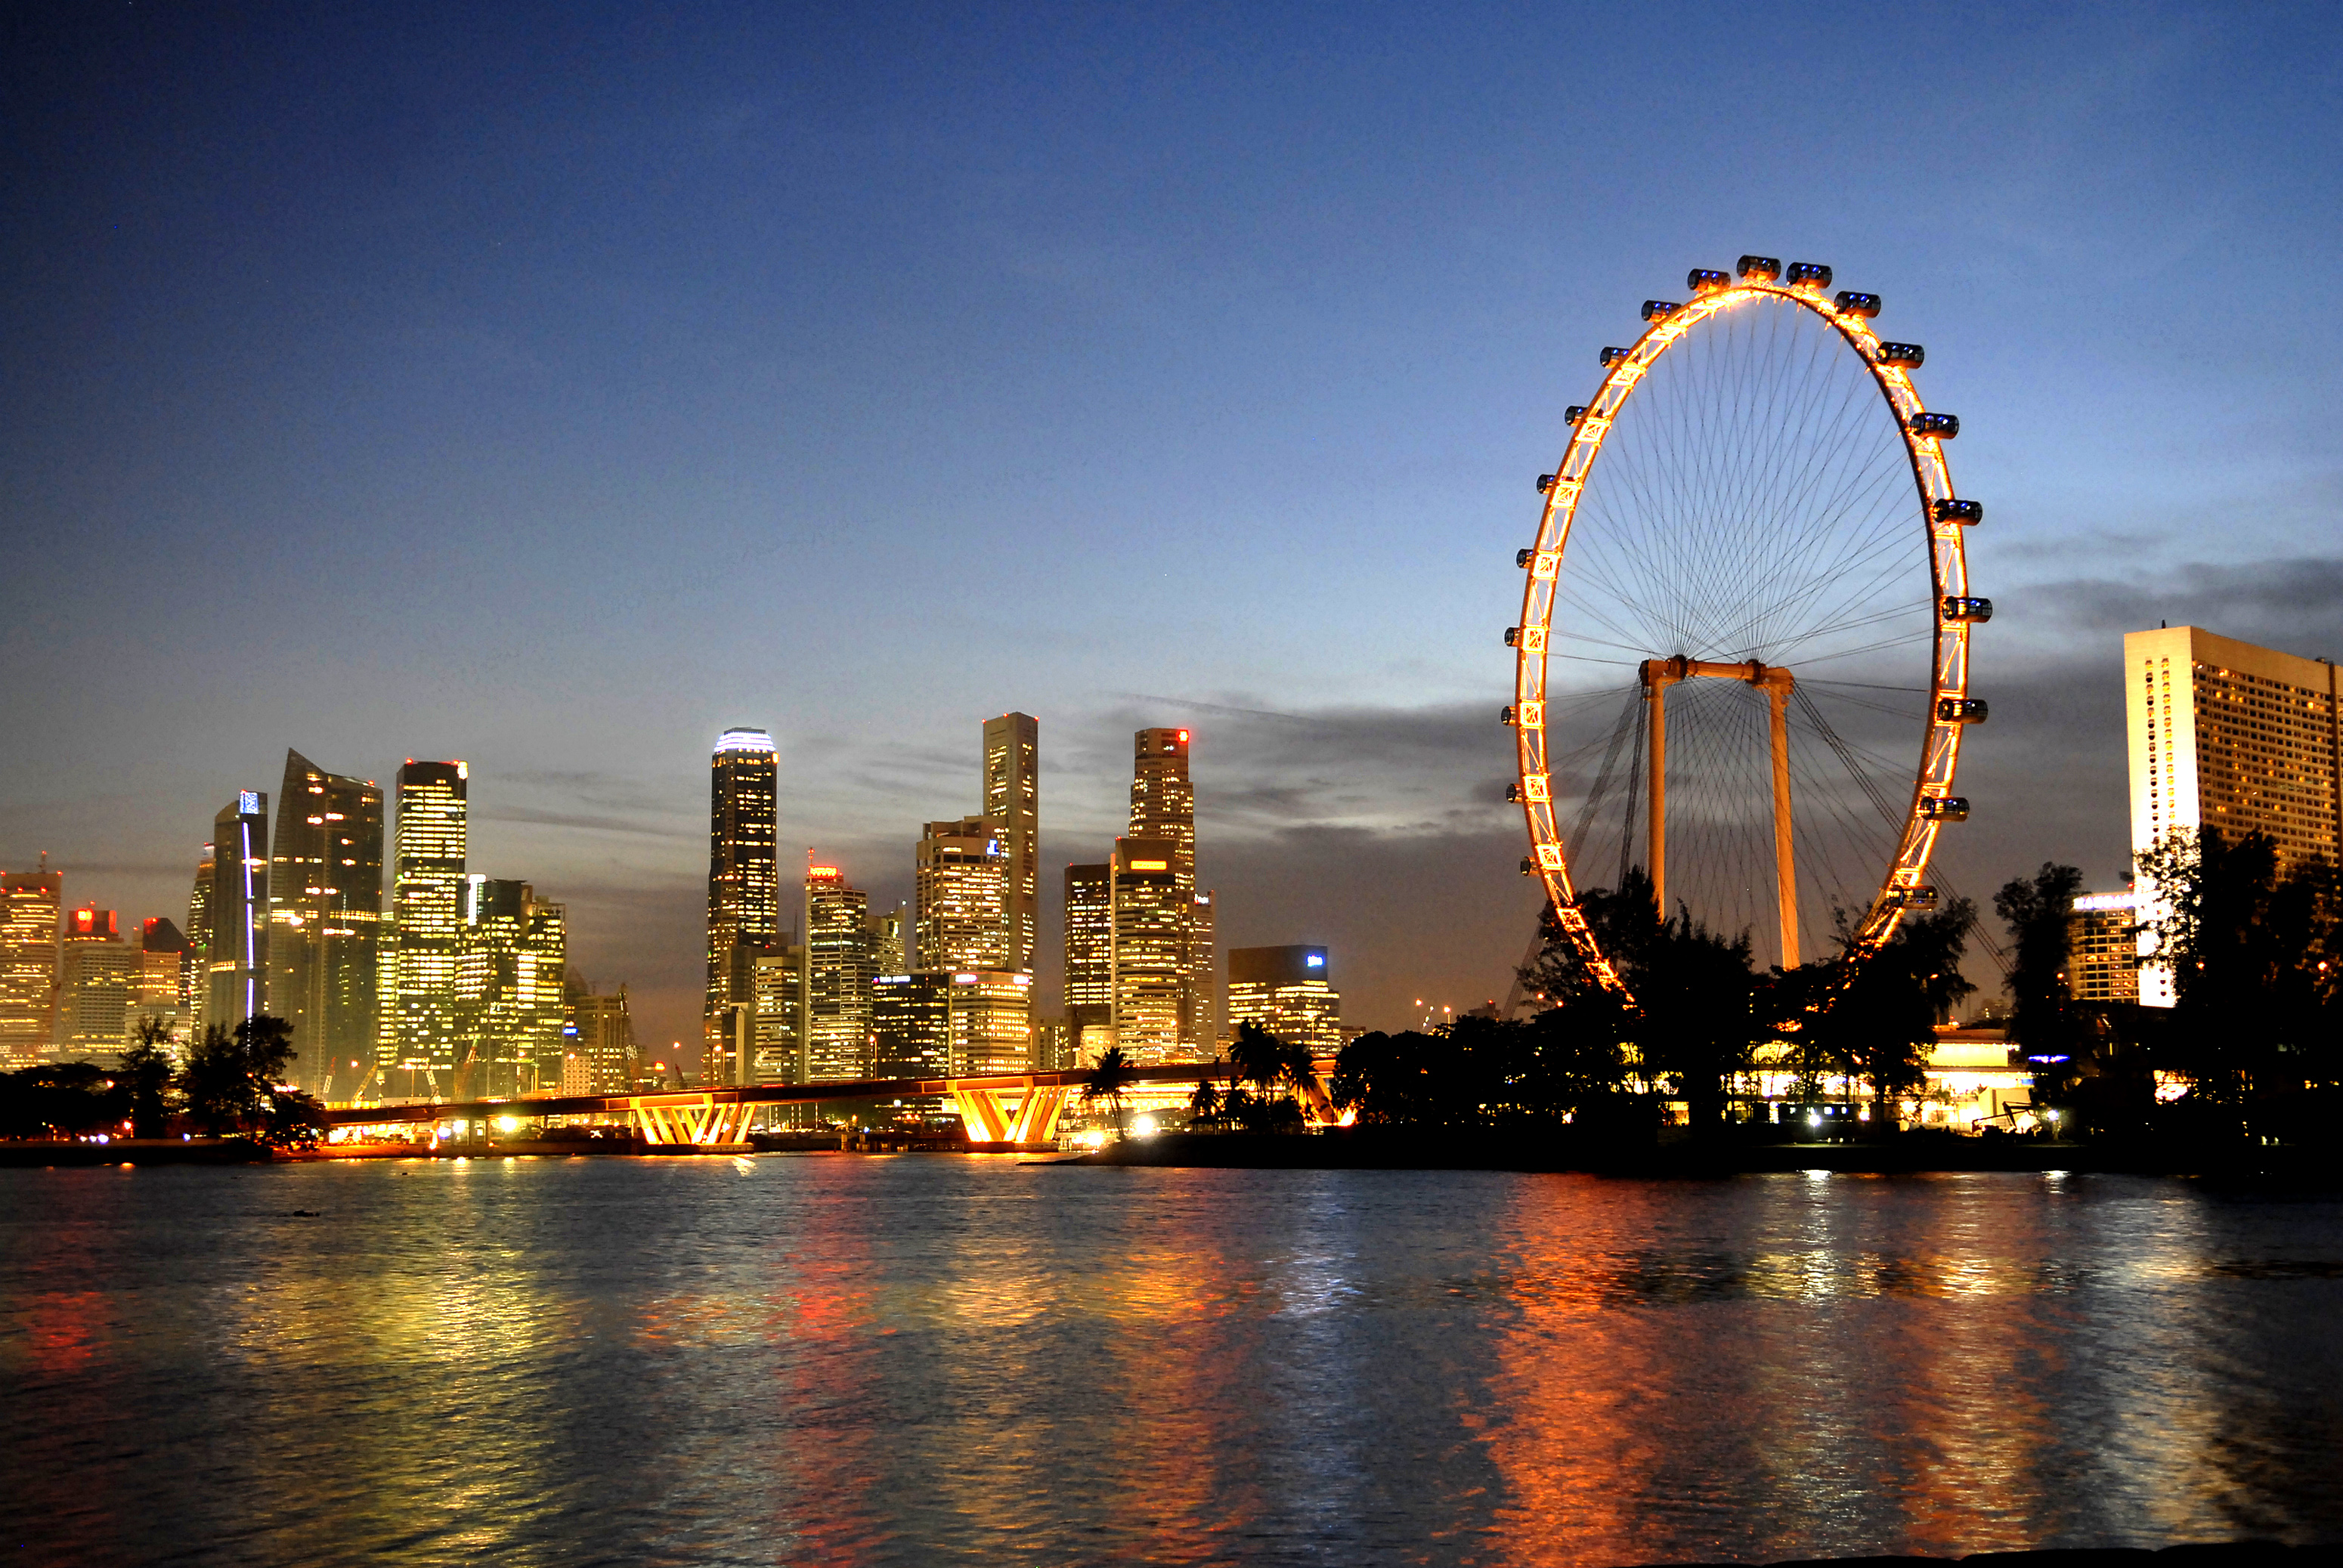 singapore flyer The singapore flyer is a giant ferris wheel in singapore described by its operators as an observation wheel, it opened in 2008, construction having taken about 2.